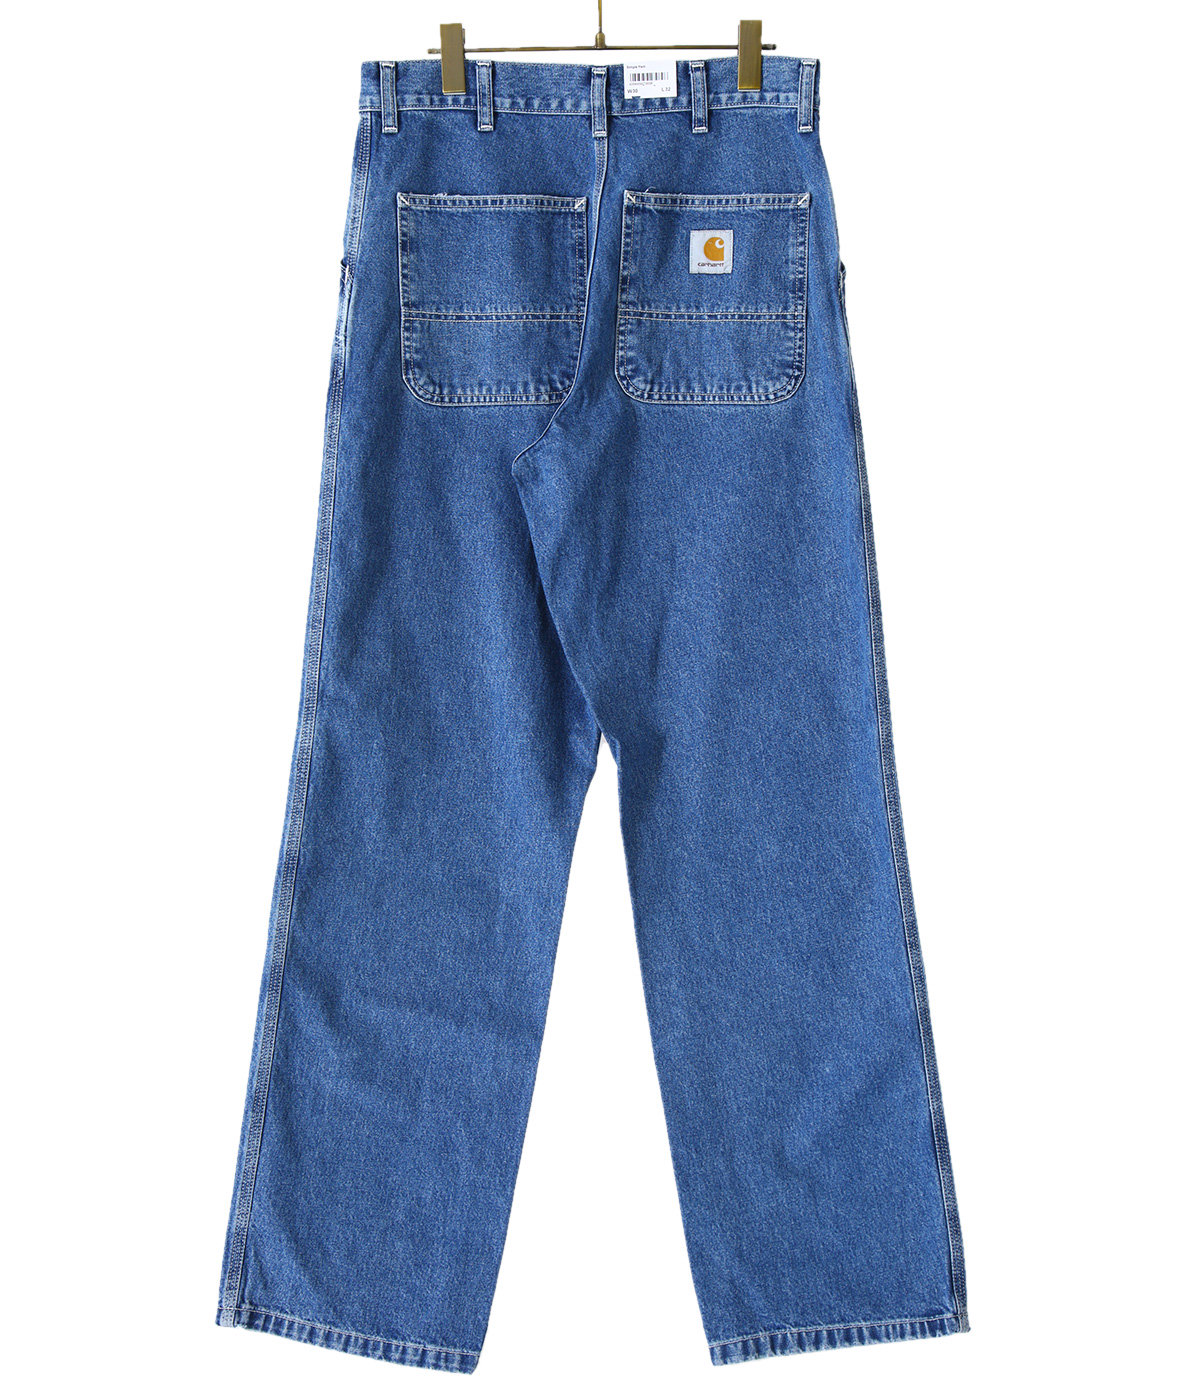 SIMPLE PANT(stone washed)